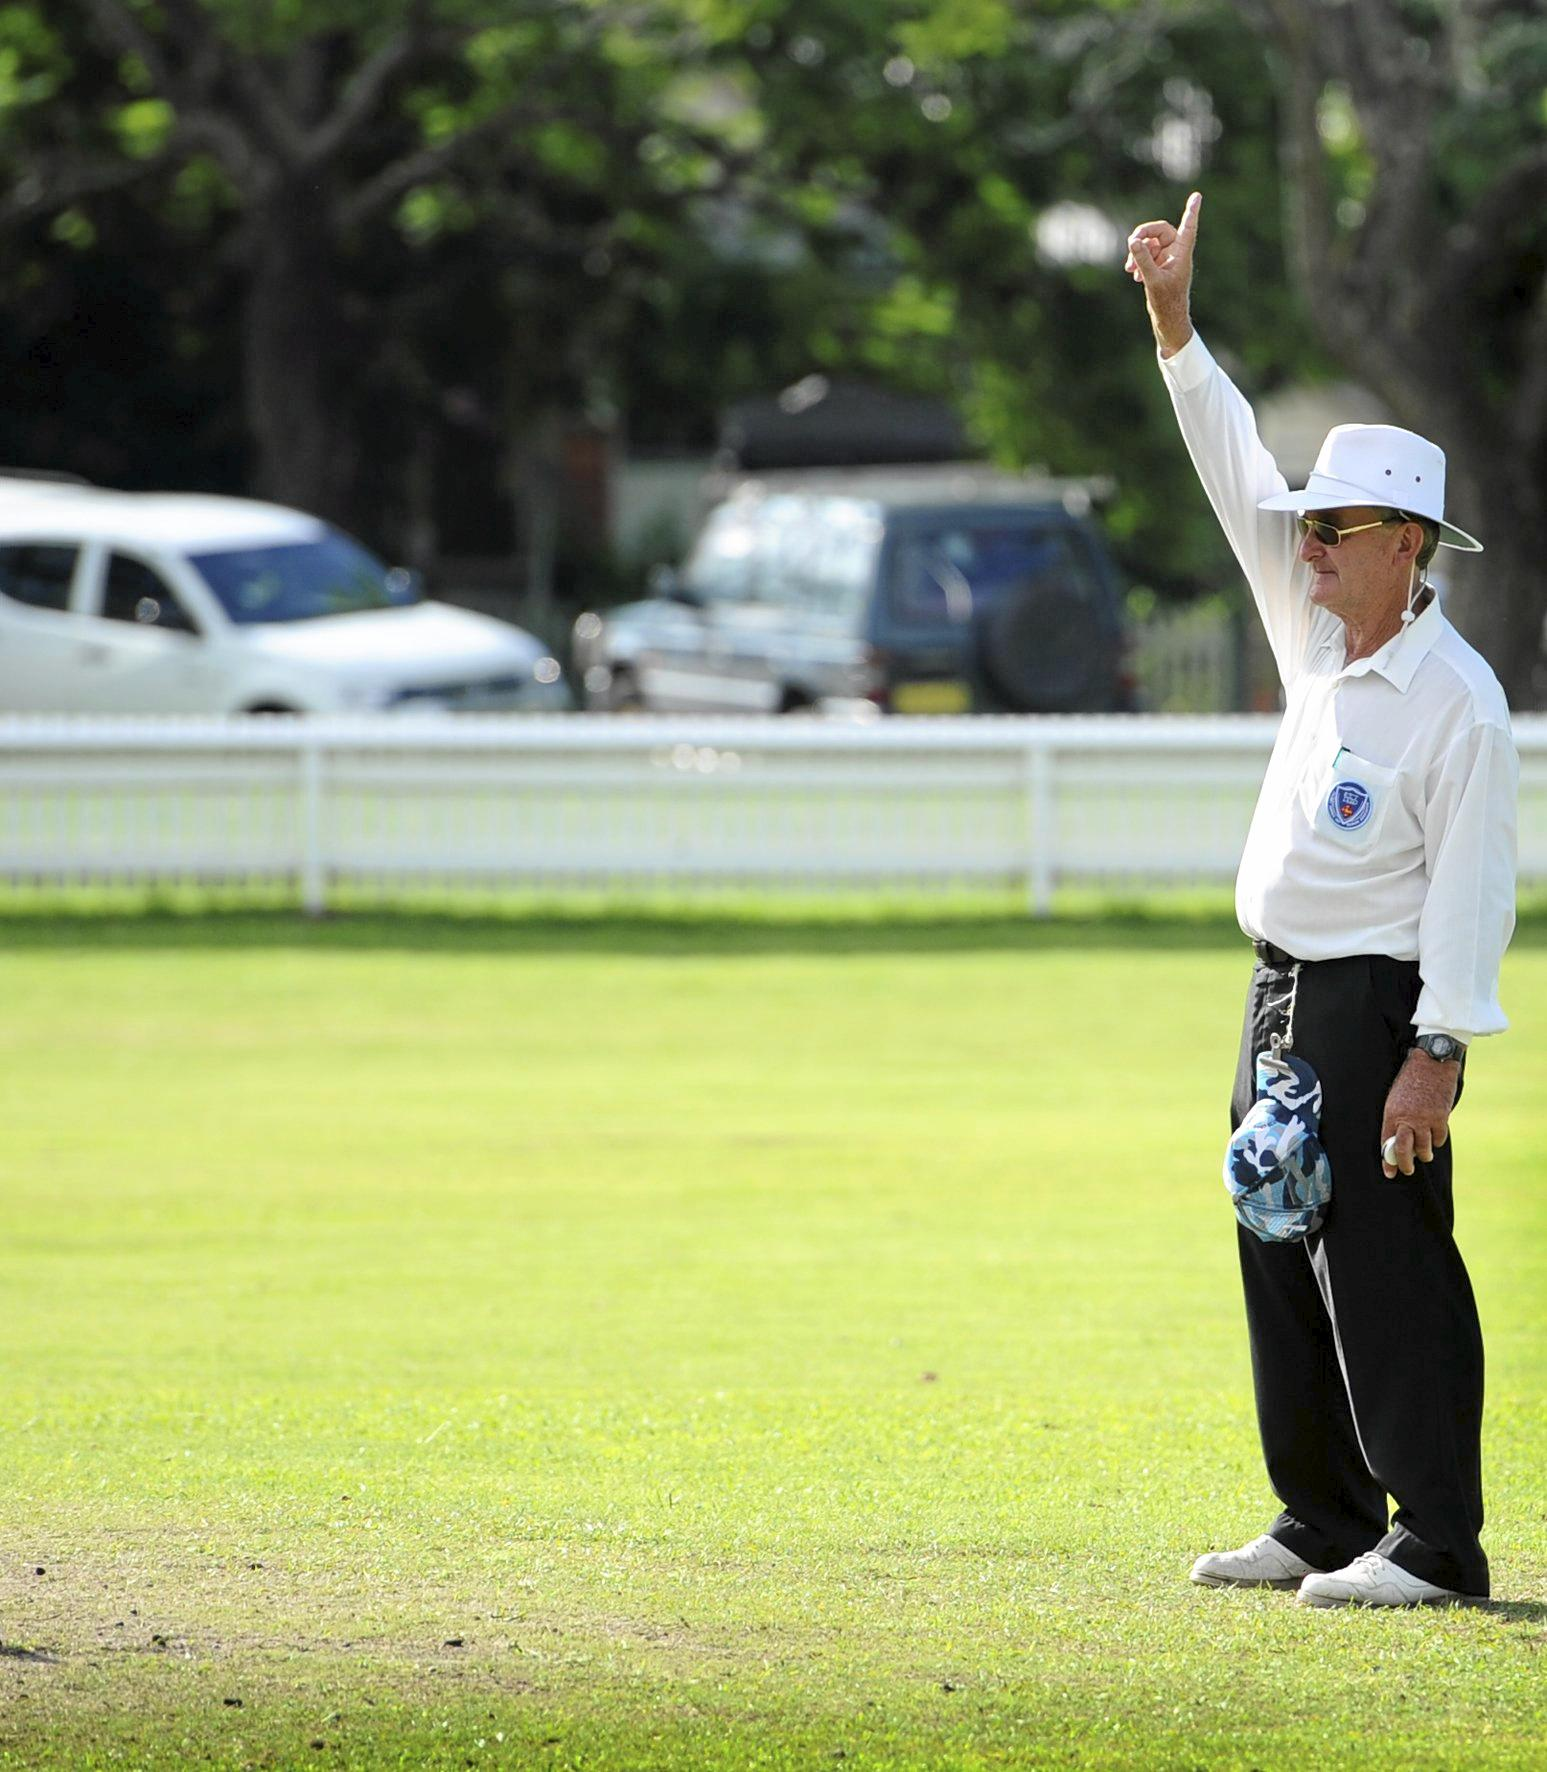 CHECKING OFF THE LIST: After his SCG debut and a Country Cup final Bruce Baxter is set to take on his next umpiring challenge at a Sydney first grade clash.